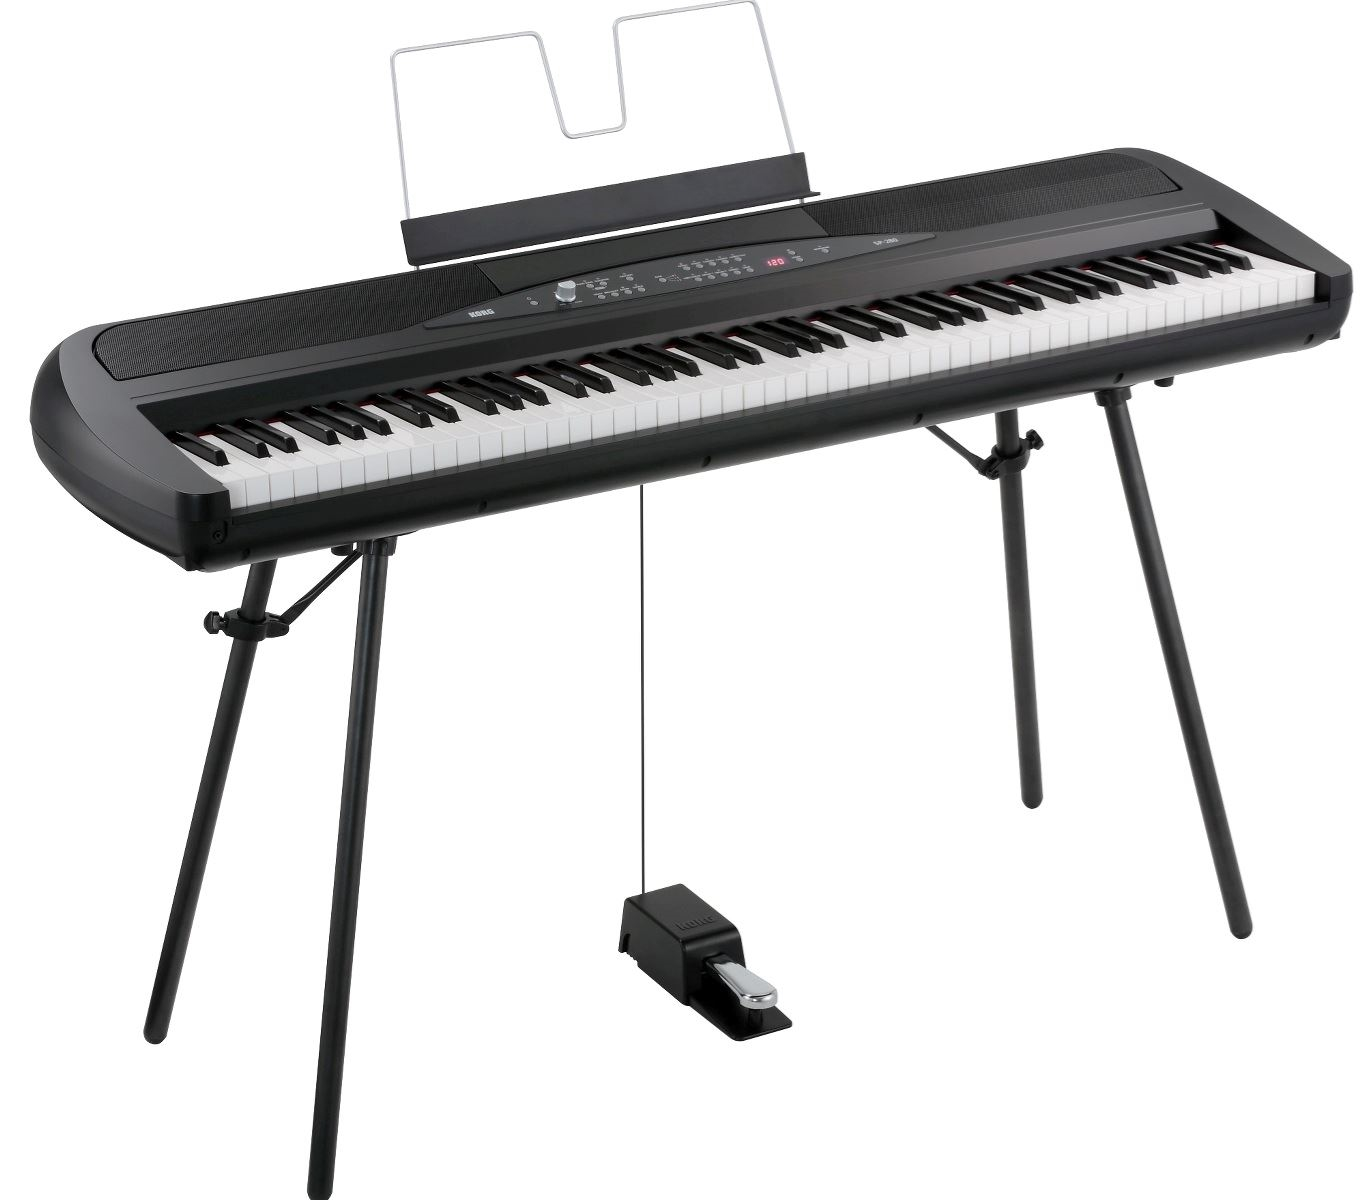 8092809 Korg SP280BK KORG SP280BK Stage-piano, sort